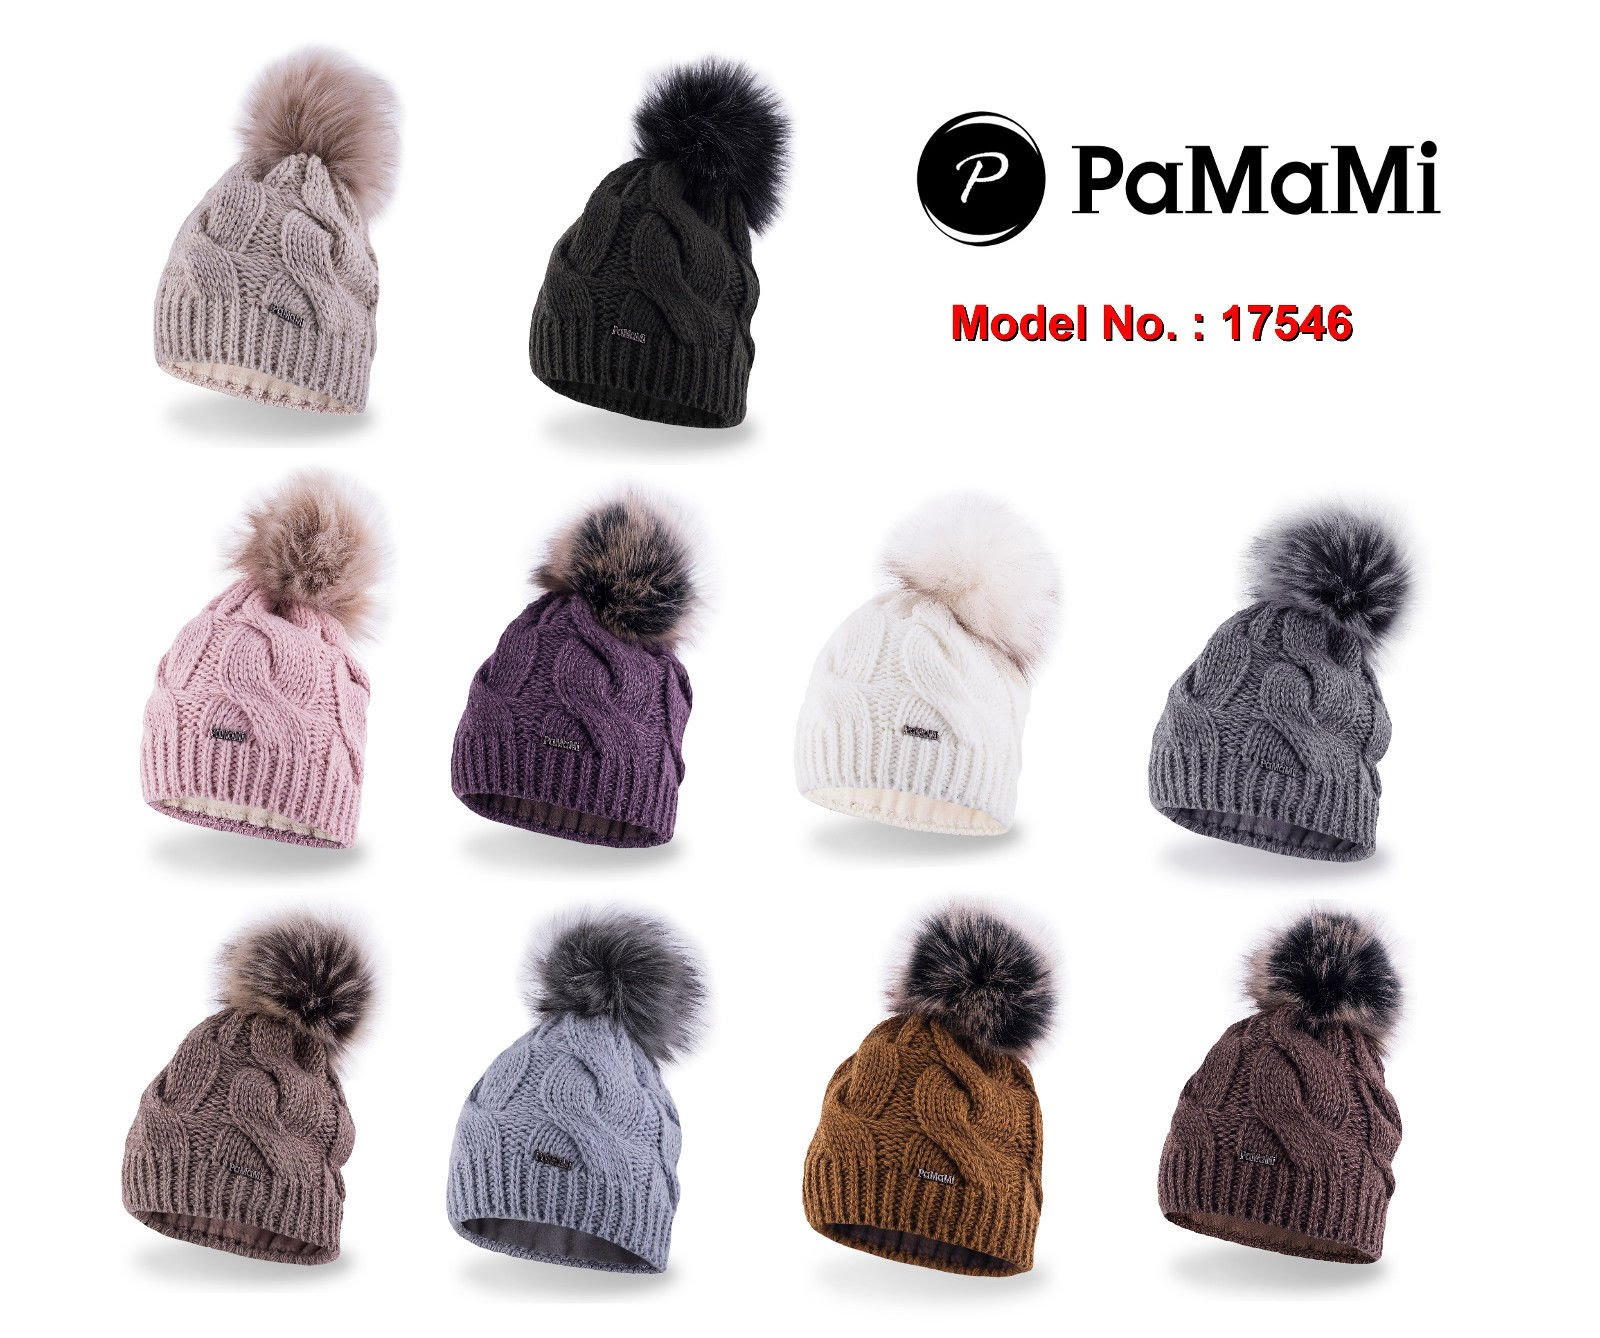 Details about PaMaMi Ladies Women s Beanie Hats Cap with pom pom Ski Fleece  lined 17546 a4ee4301d28